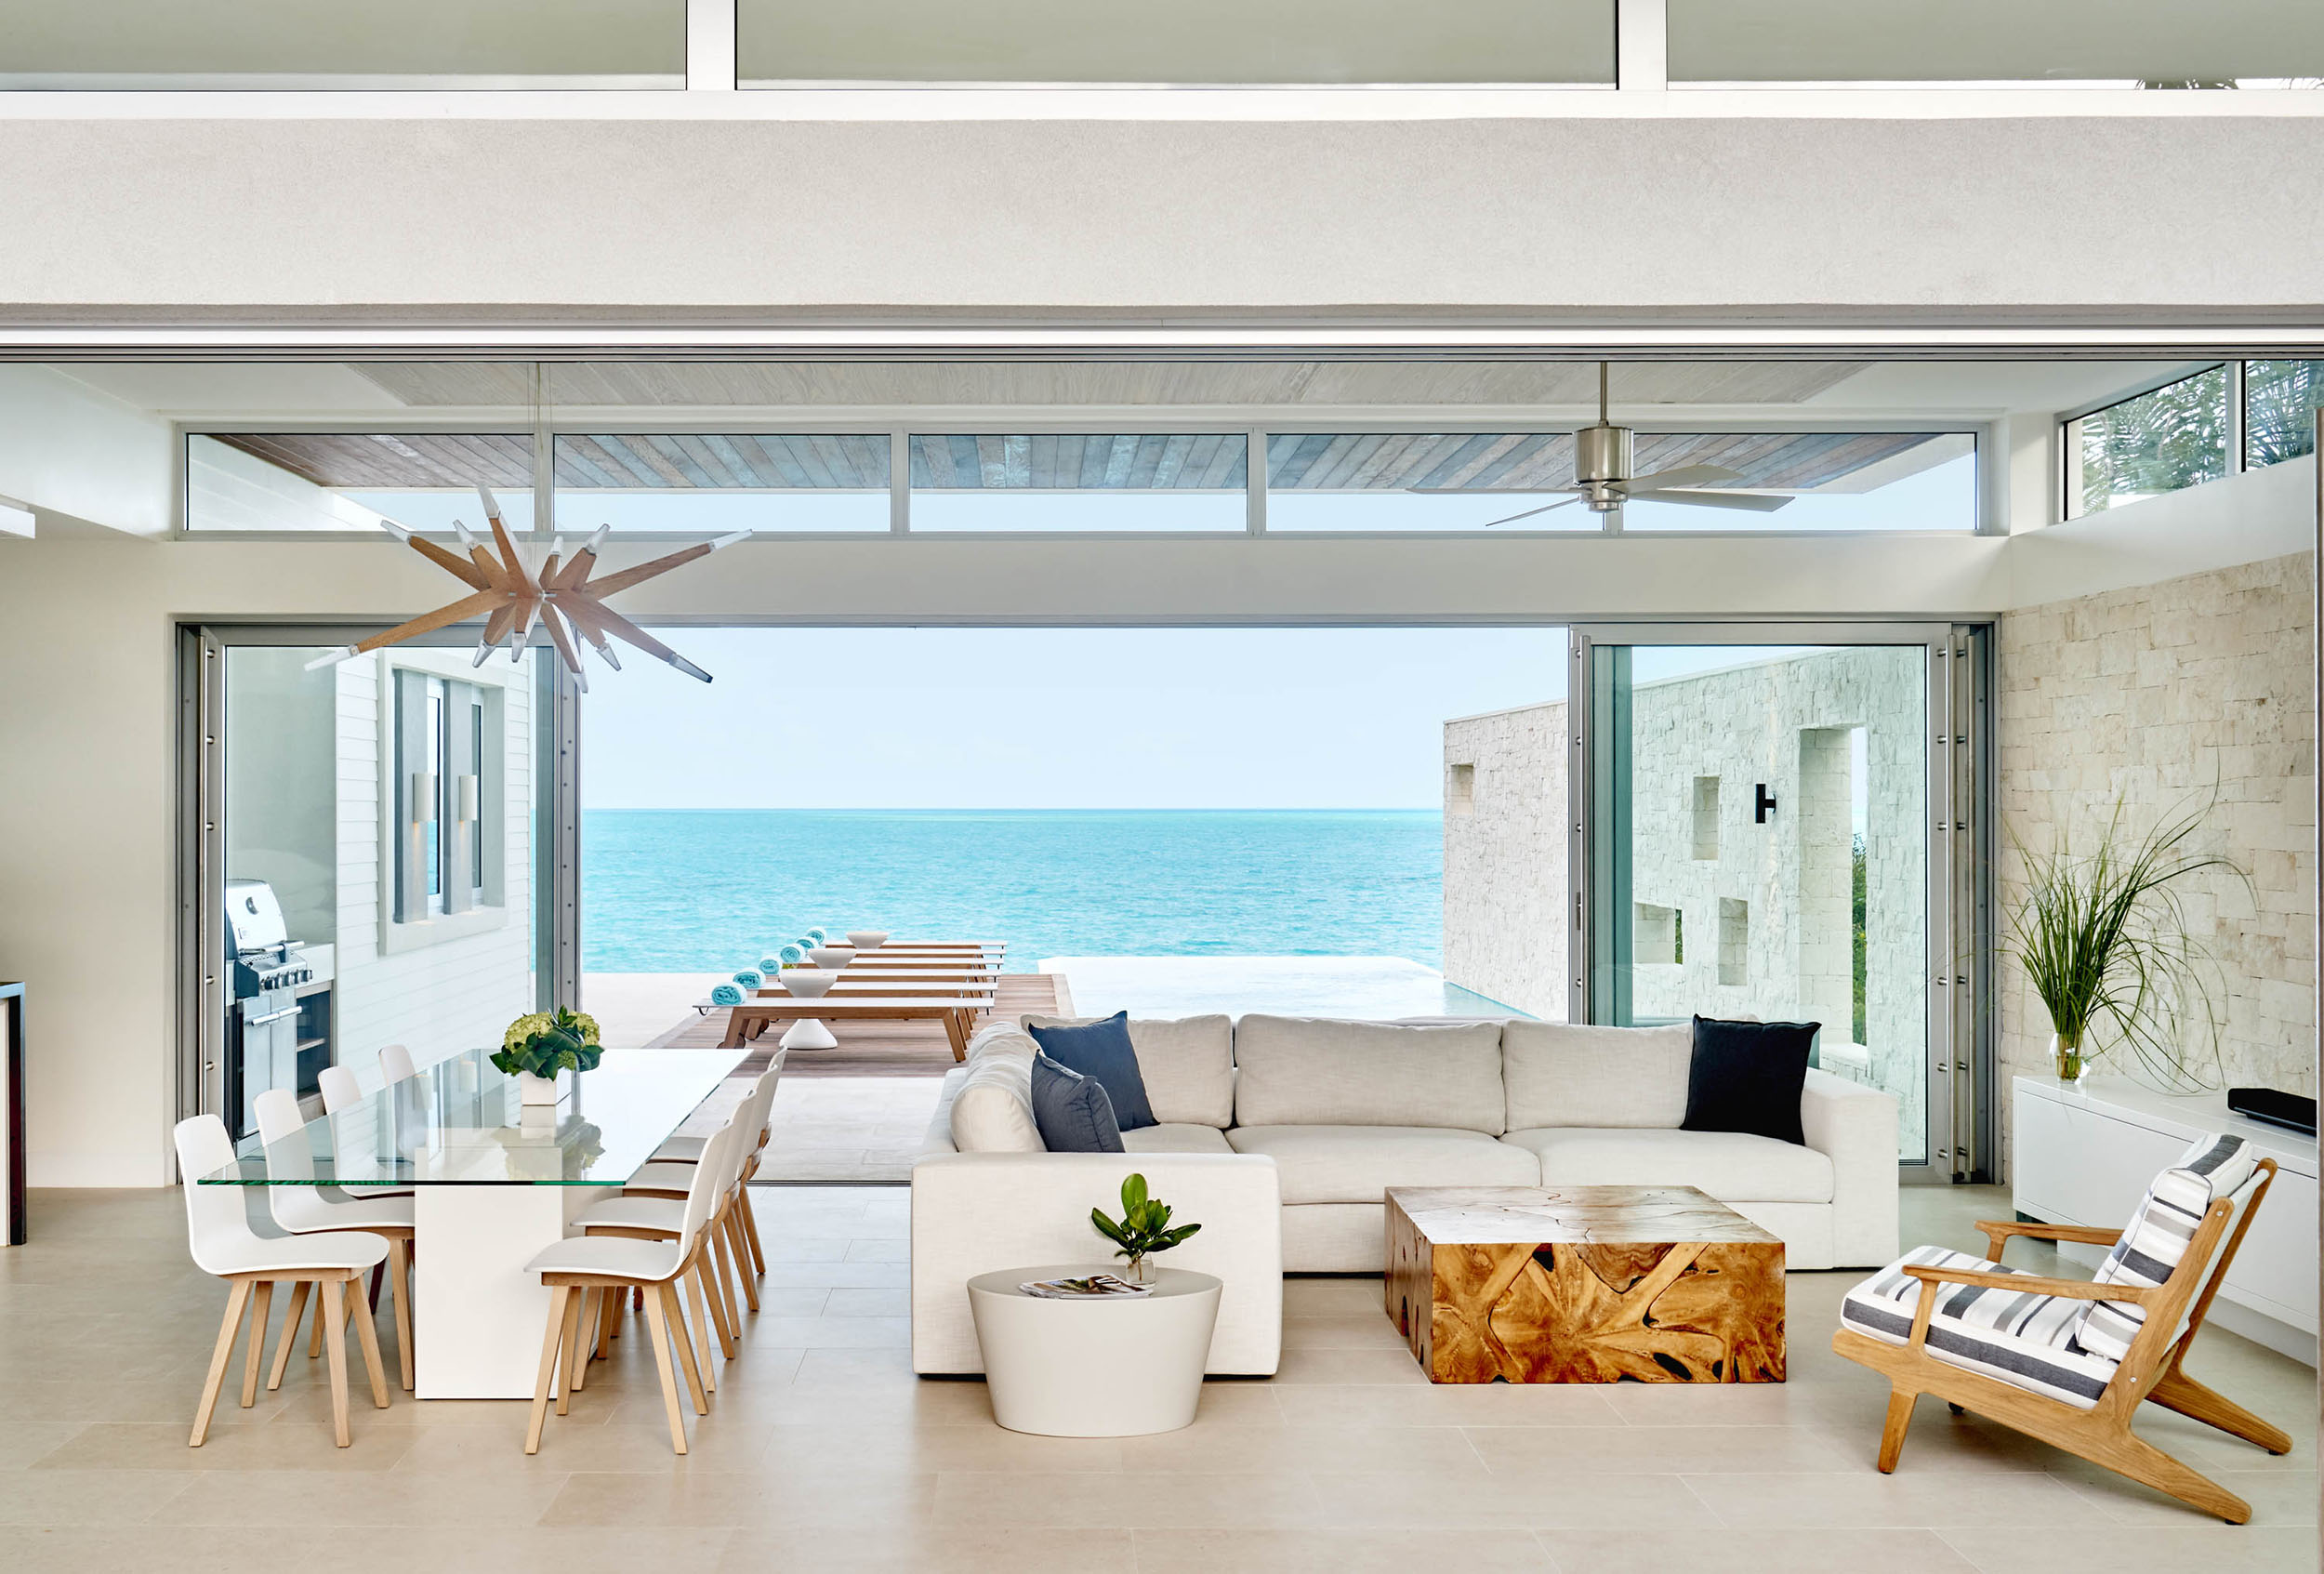 Wymara Villas - view of the living and dining area with pool and deck beyond